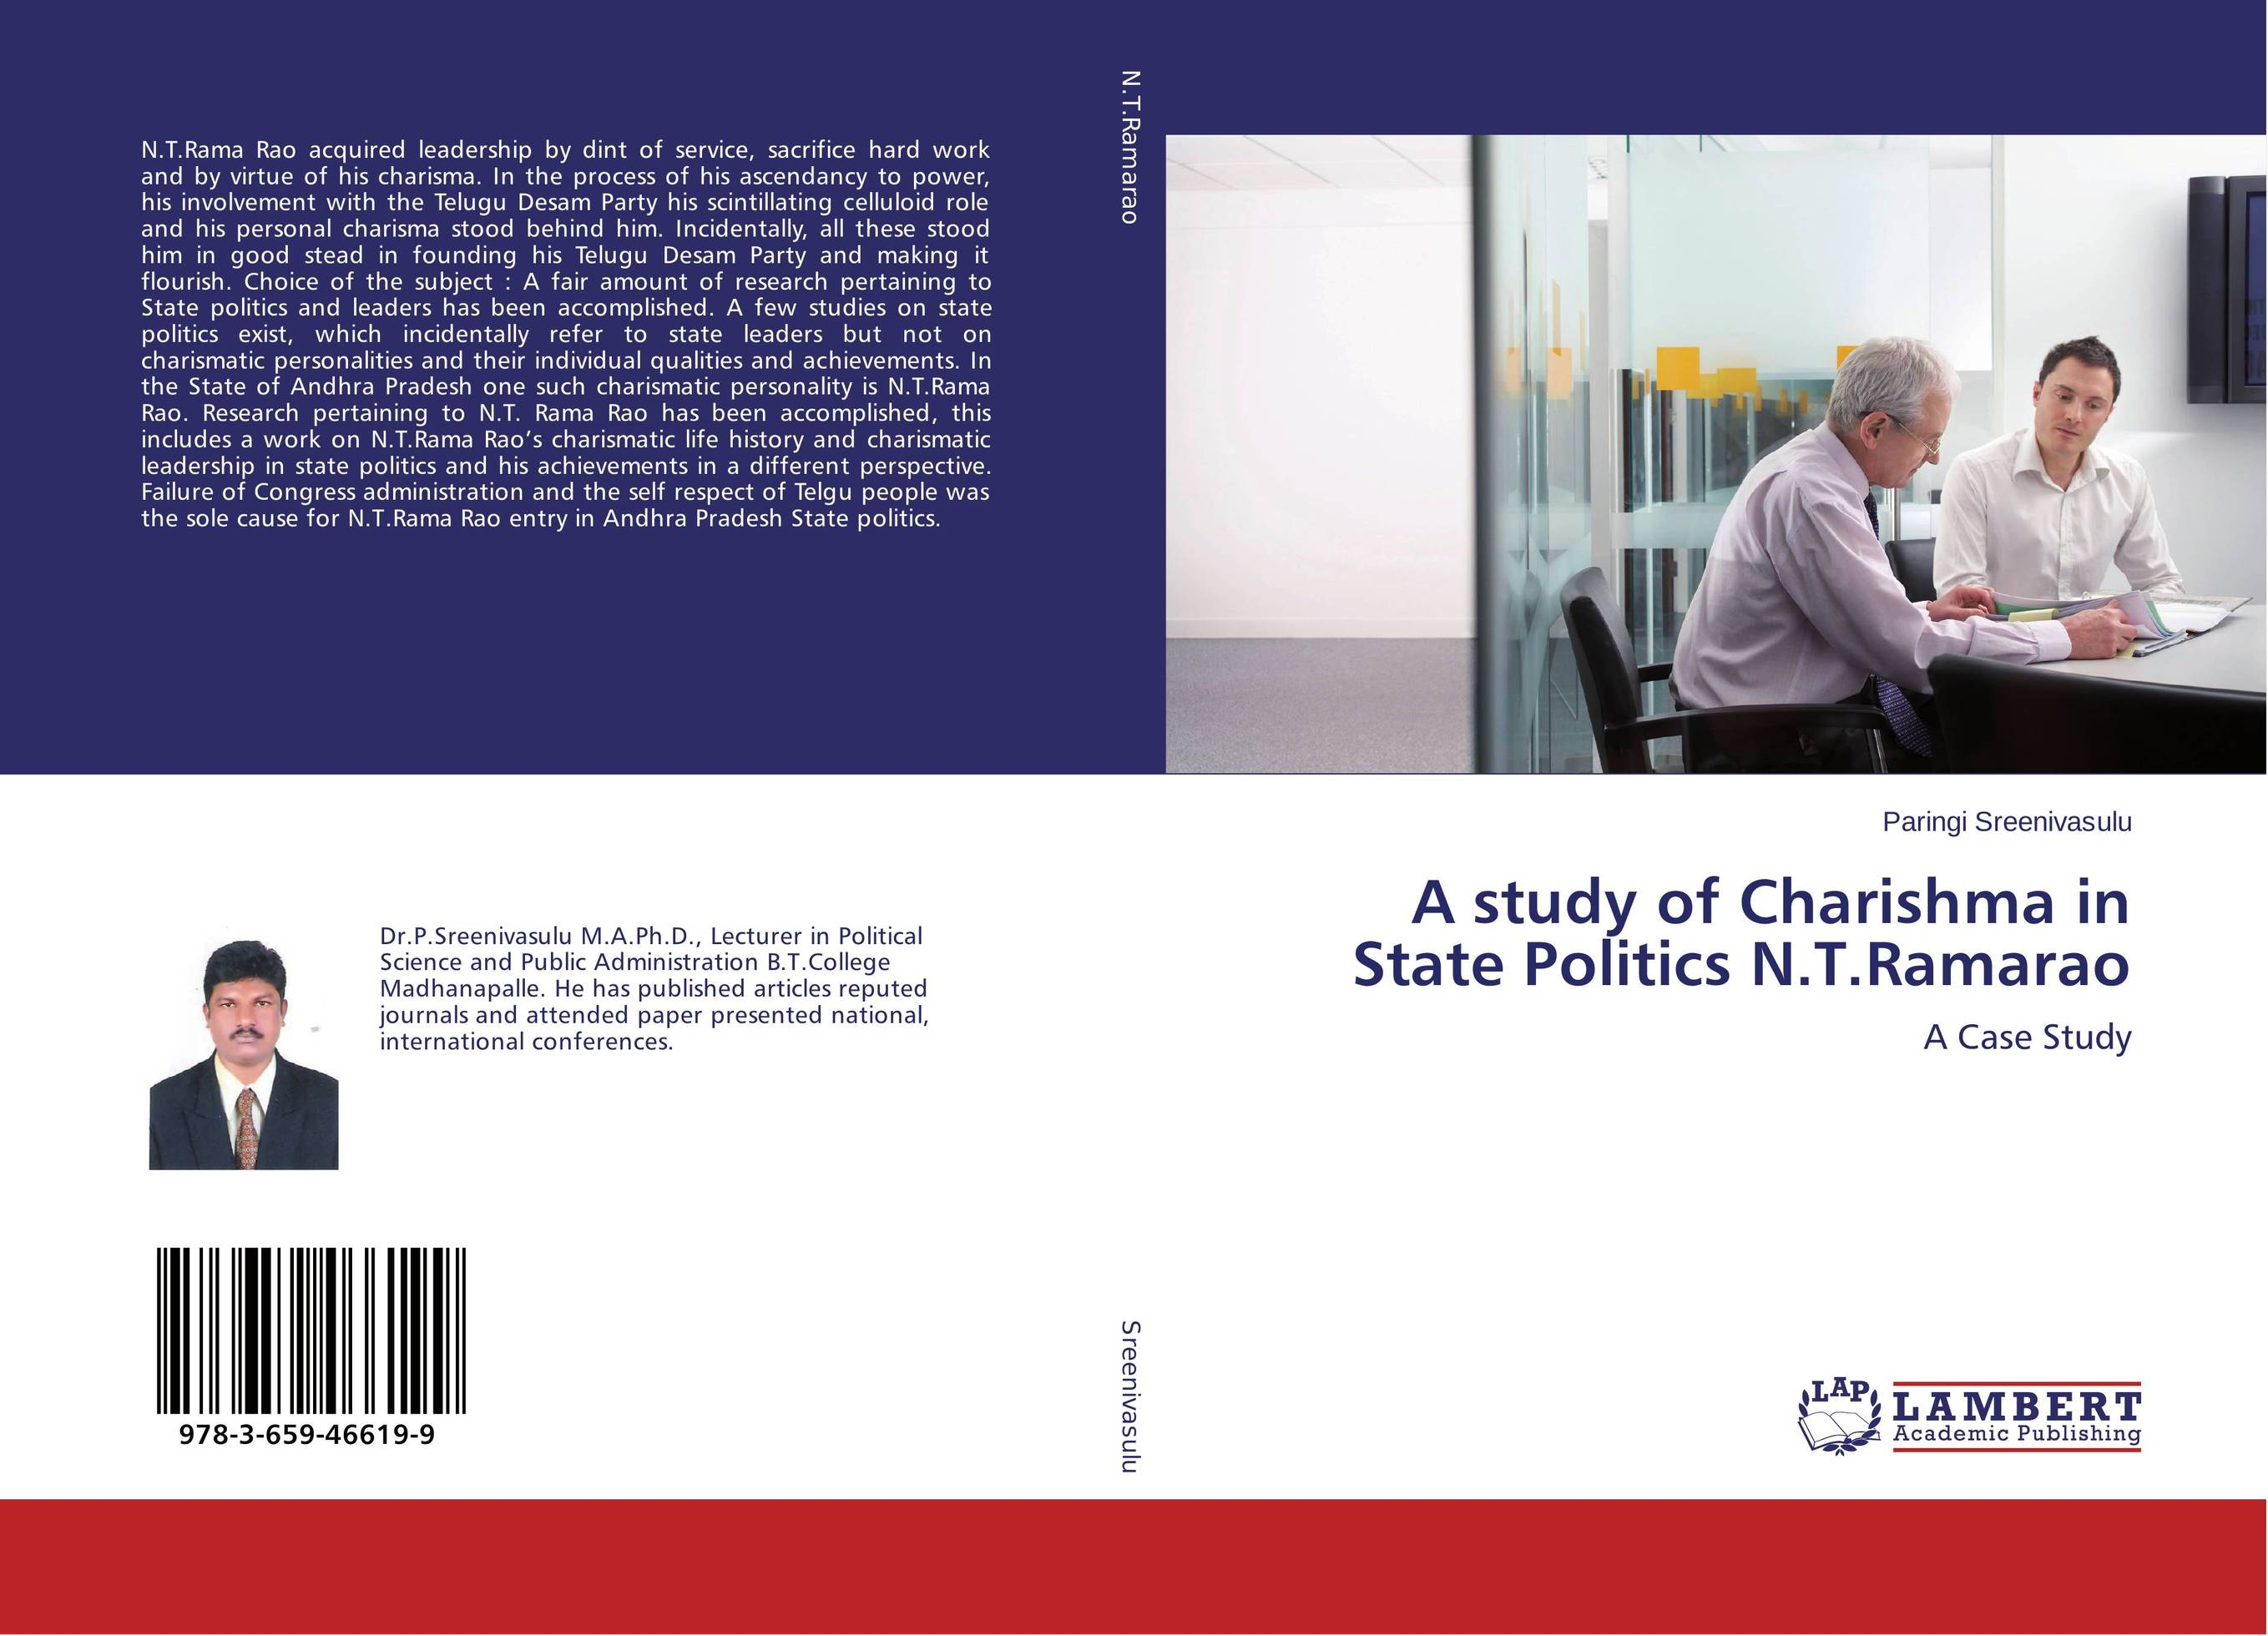 A study of Charishma in State Politics N.T.Ramarao kilian straight to heaven